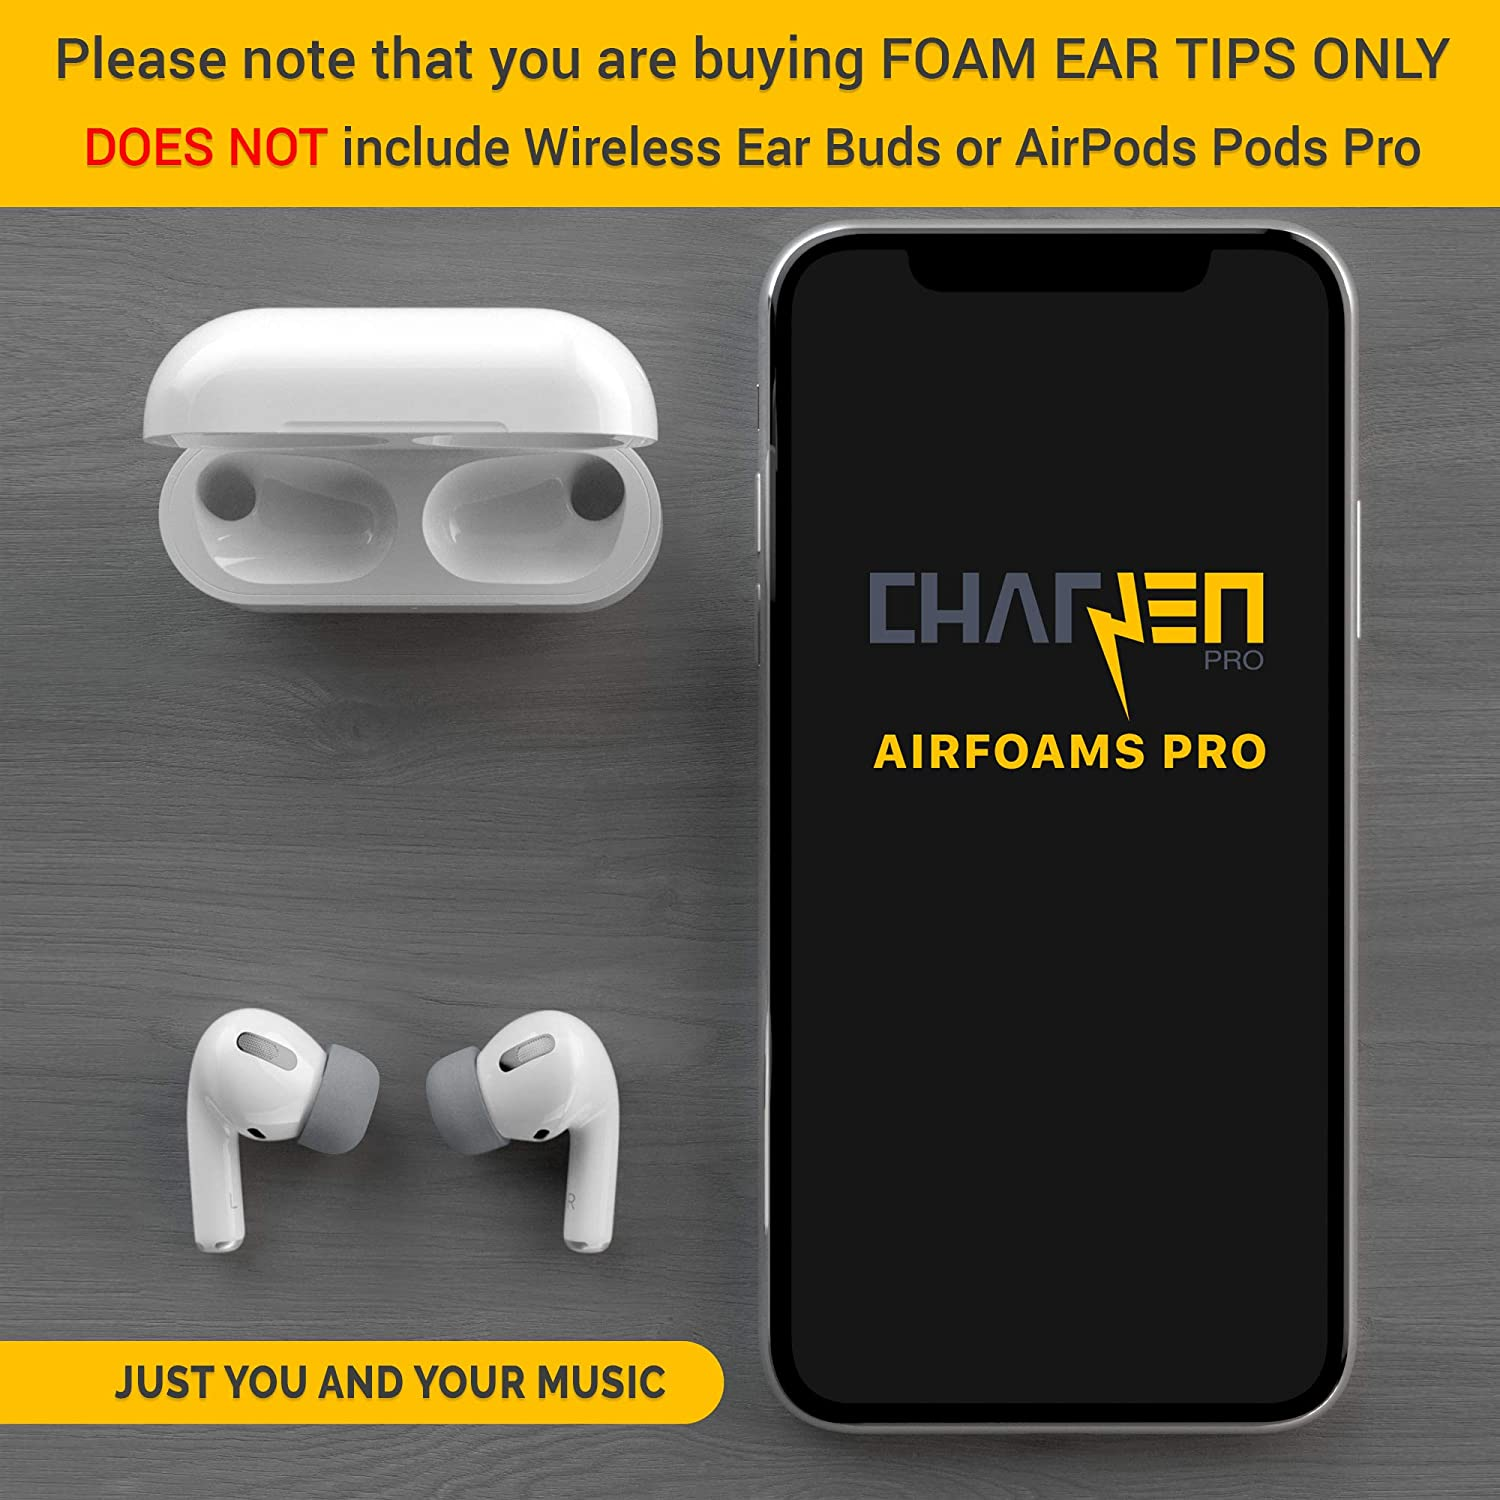 2 Medium//Large, Space Gray AirFoams Pro Foam Ear Tips for Airpods Pro Stays in Your Ears Premium Memory Foam Ear Tips All Day Comfort. No Silicone Ear tip Pain